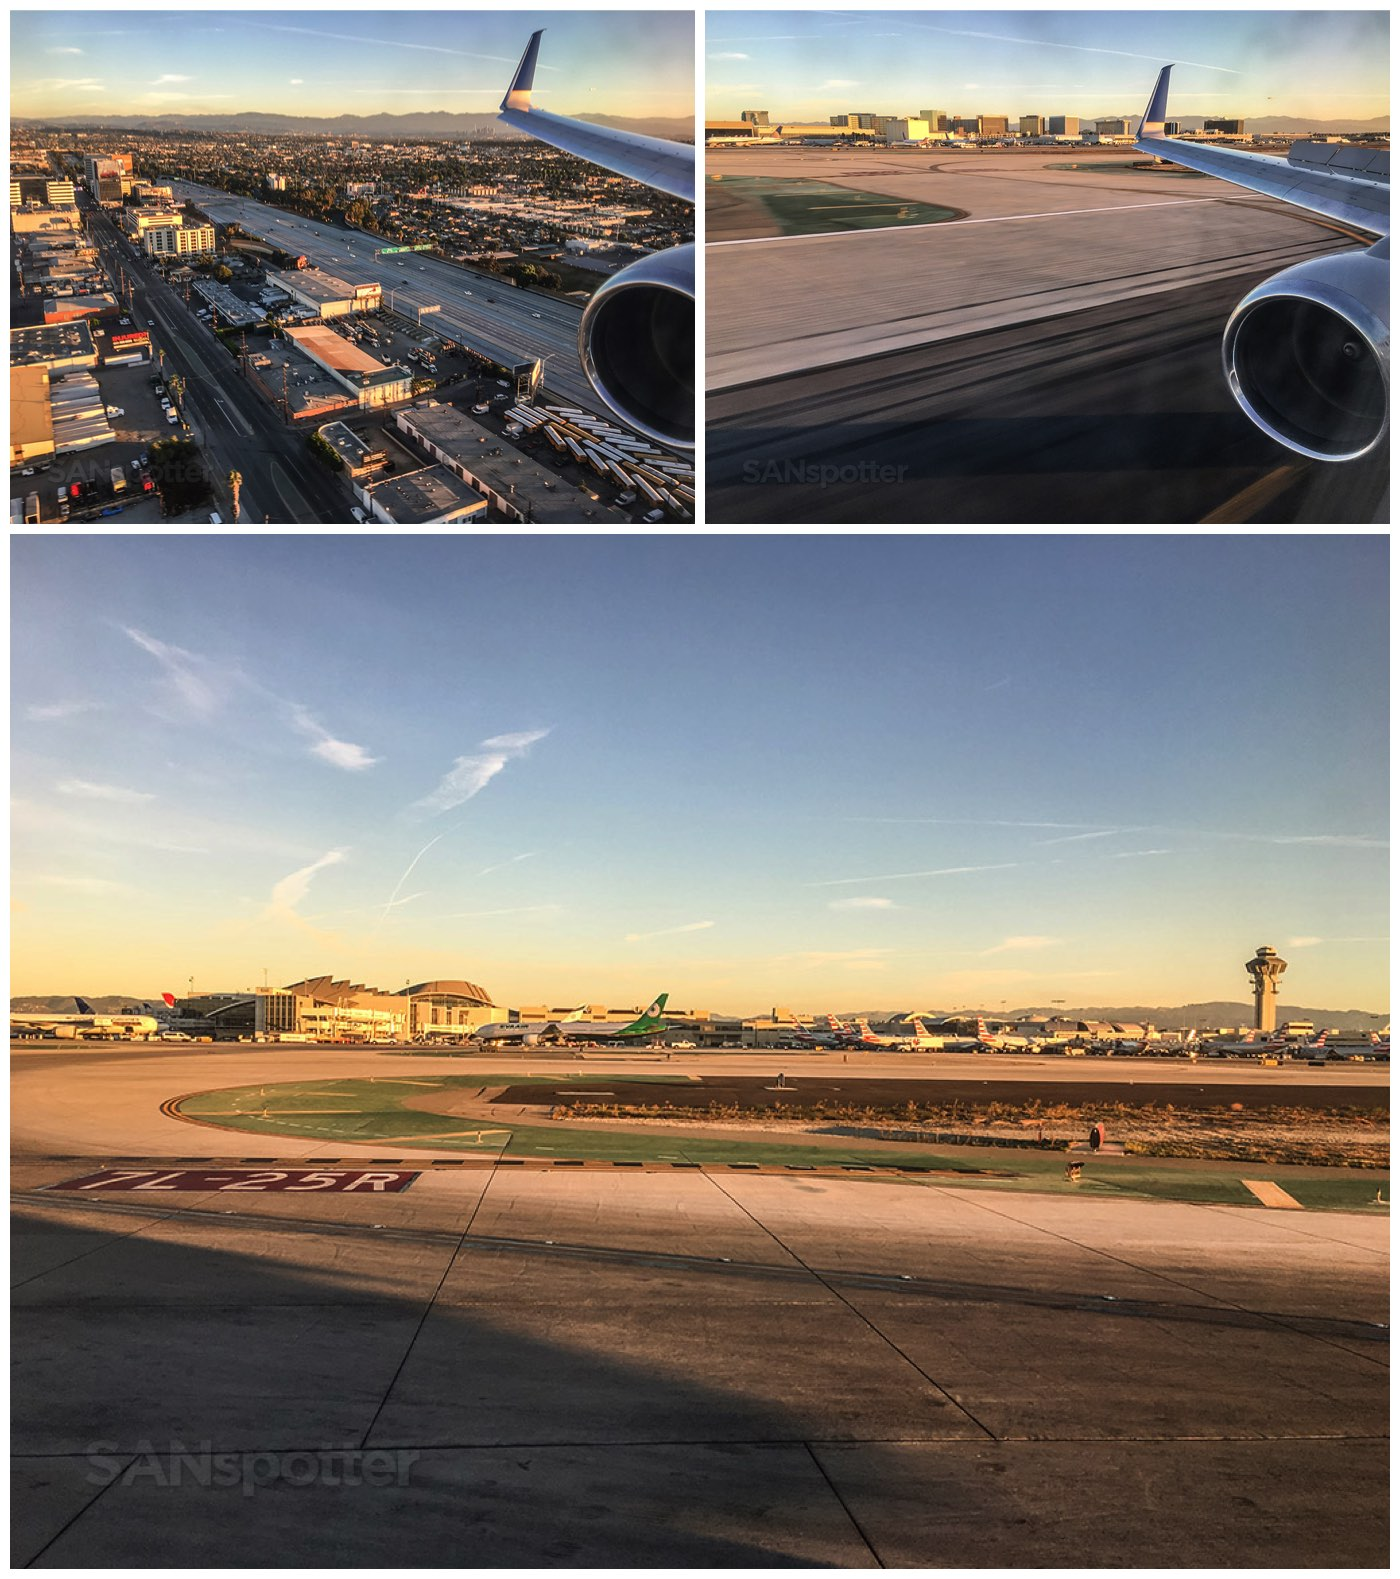 Approach and landing at LAX